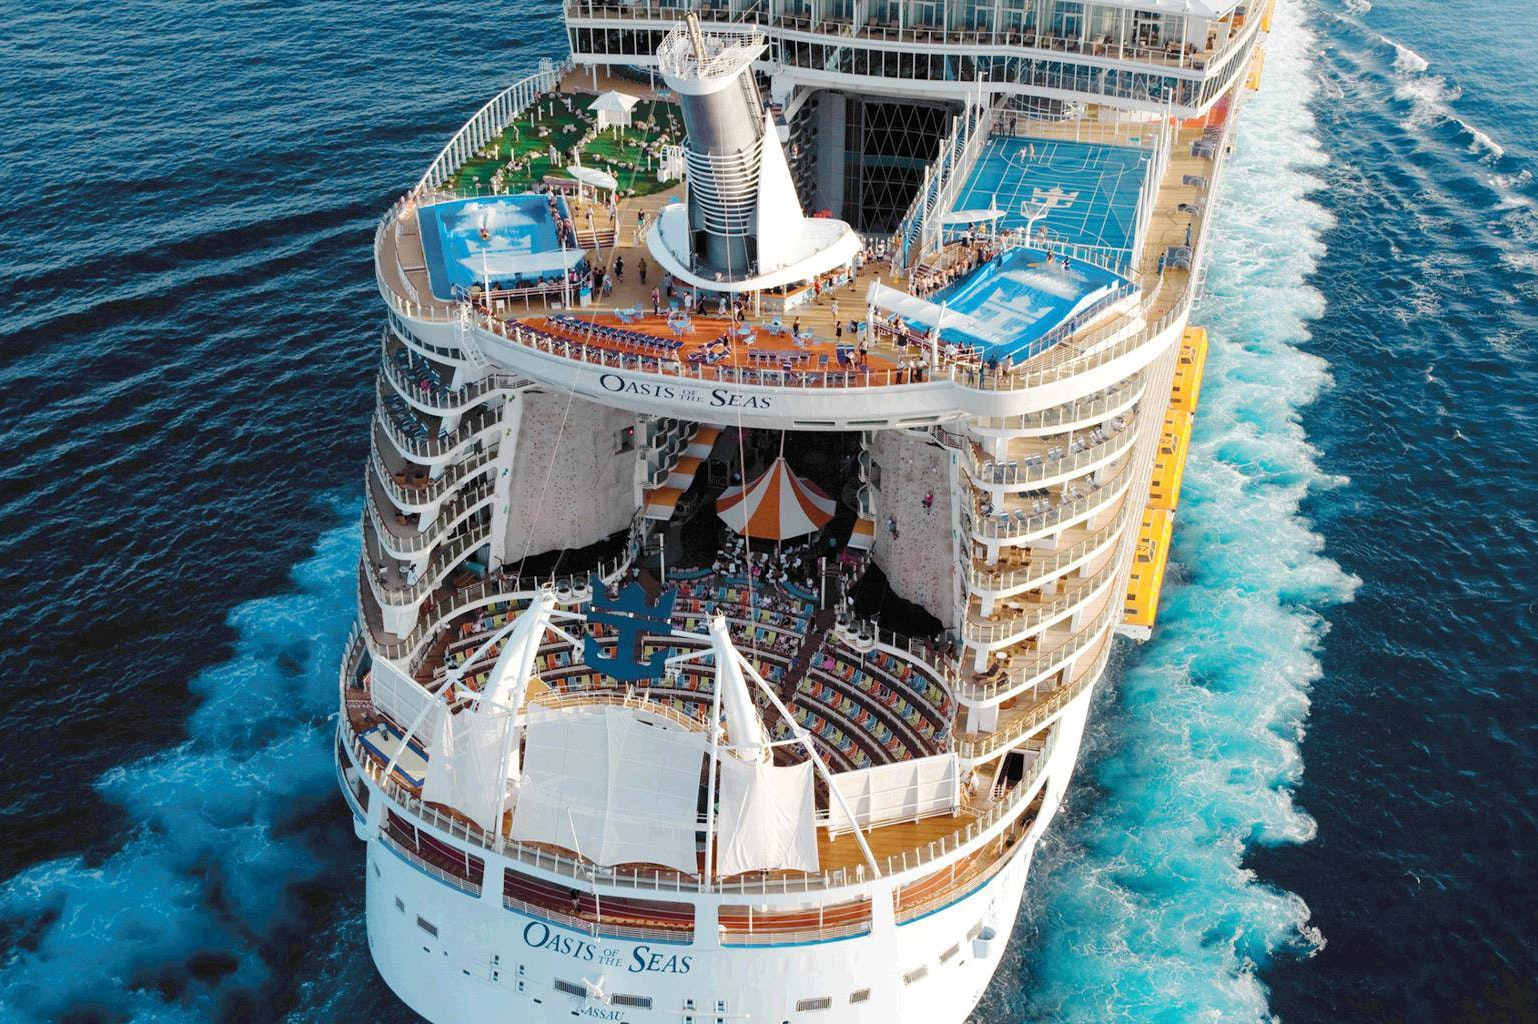 Best Caribbean Cruise Line: Royal Caribbean